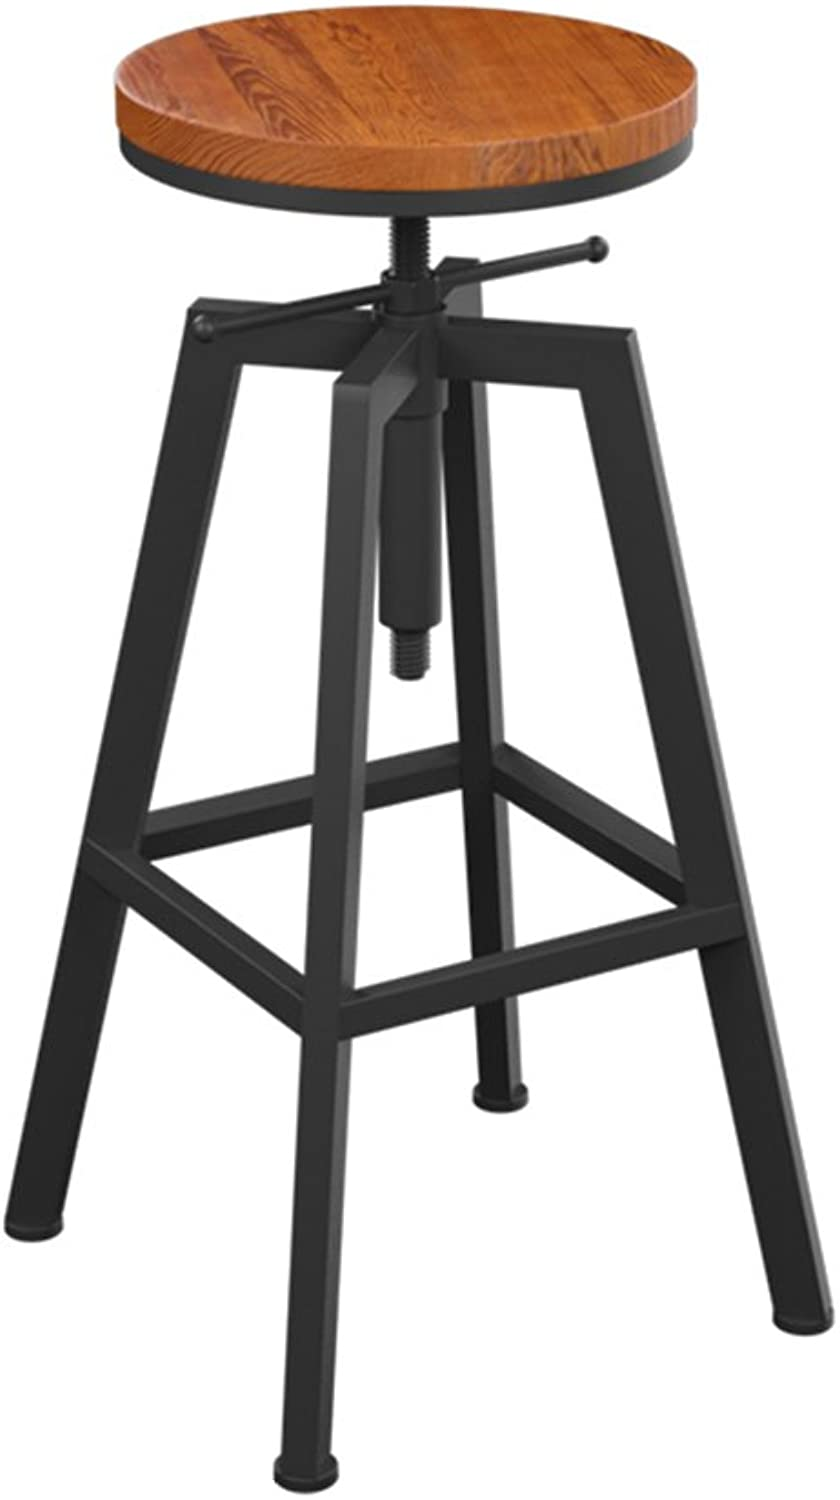 Bar Chairs, Retro Style Round Stool High Stool Dining Chair Iron Chair Height Adjustable 65 to 85 cm, 2